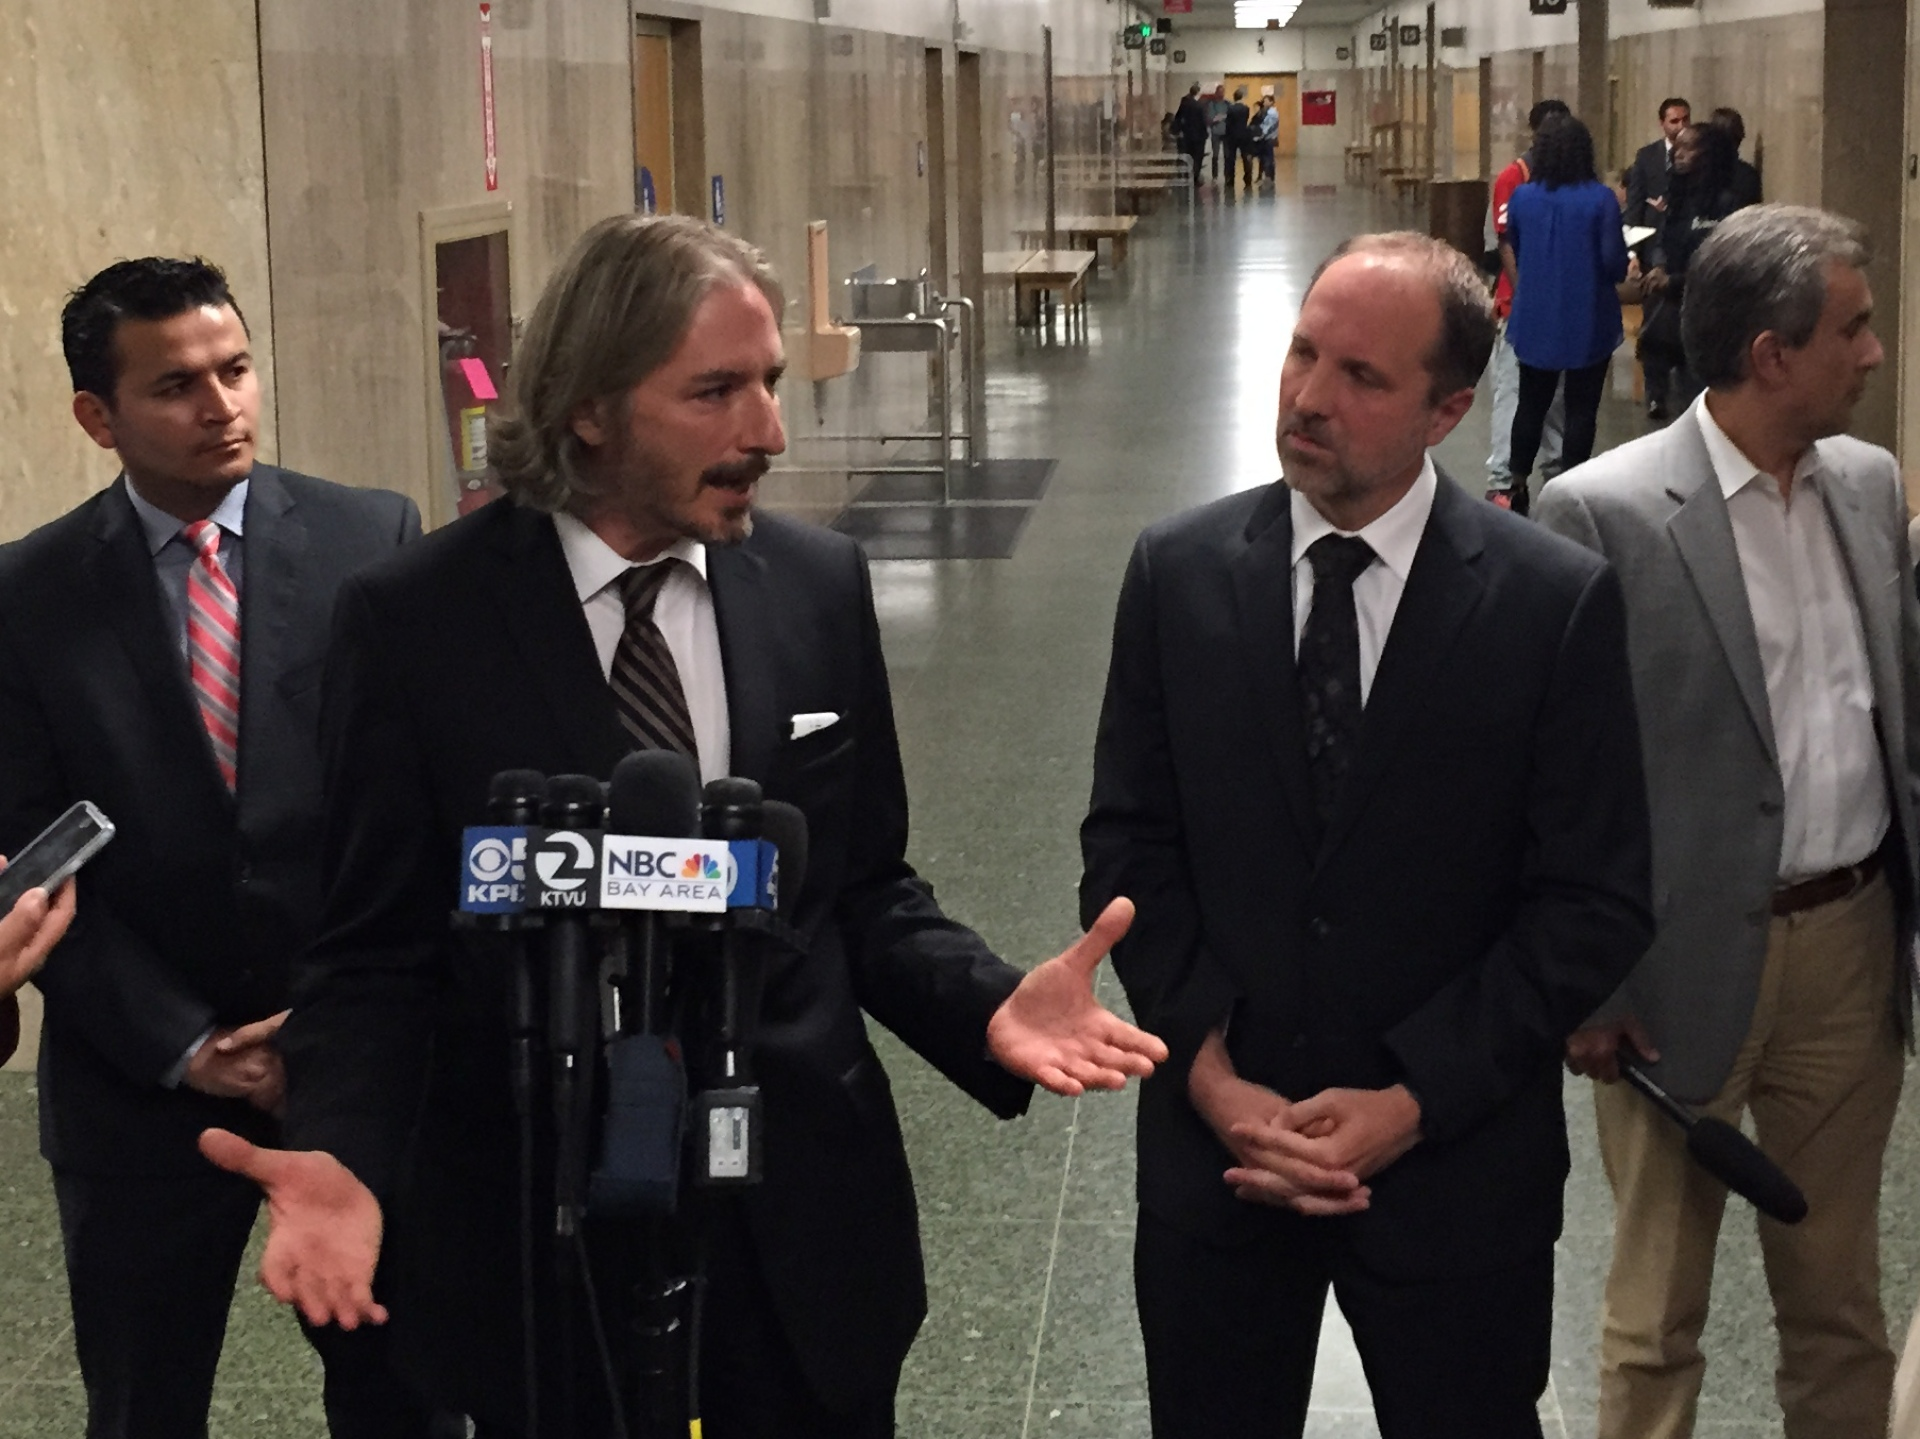 Juan Francisco Lopez-Sanchez's attorneys Matt Gonzalez and Francisco Ugarte speak to reporters after the conclusion of a preliminary hearing at which a judge ruled there is sufficient evidence to hold their client to answer second-degree murder charges for the killing of Kathryn Steinle.